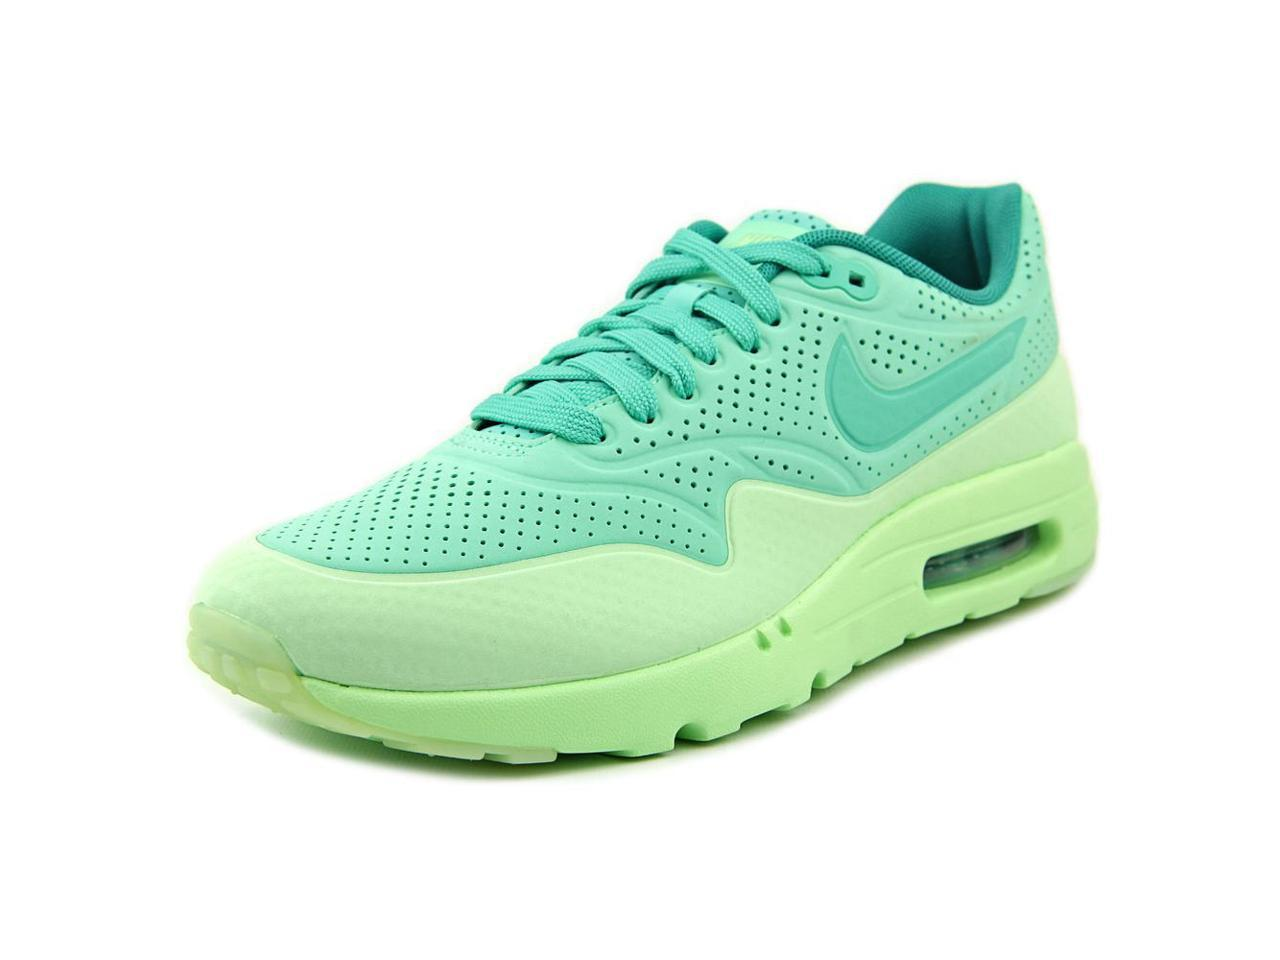 Nike Women Air Max 1 Ultra Moire Women Nike US 10 Green Sneakers d15814